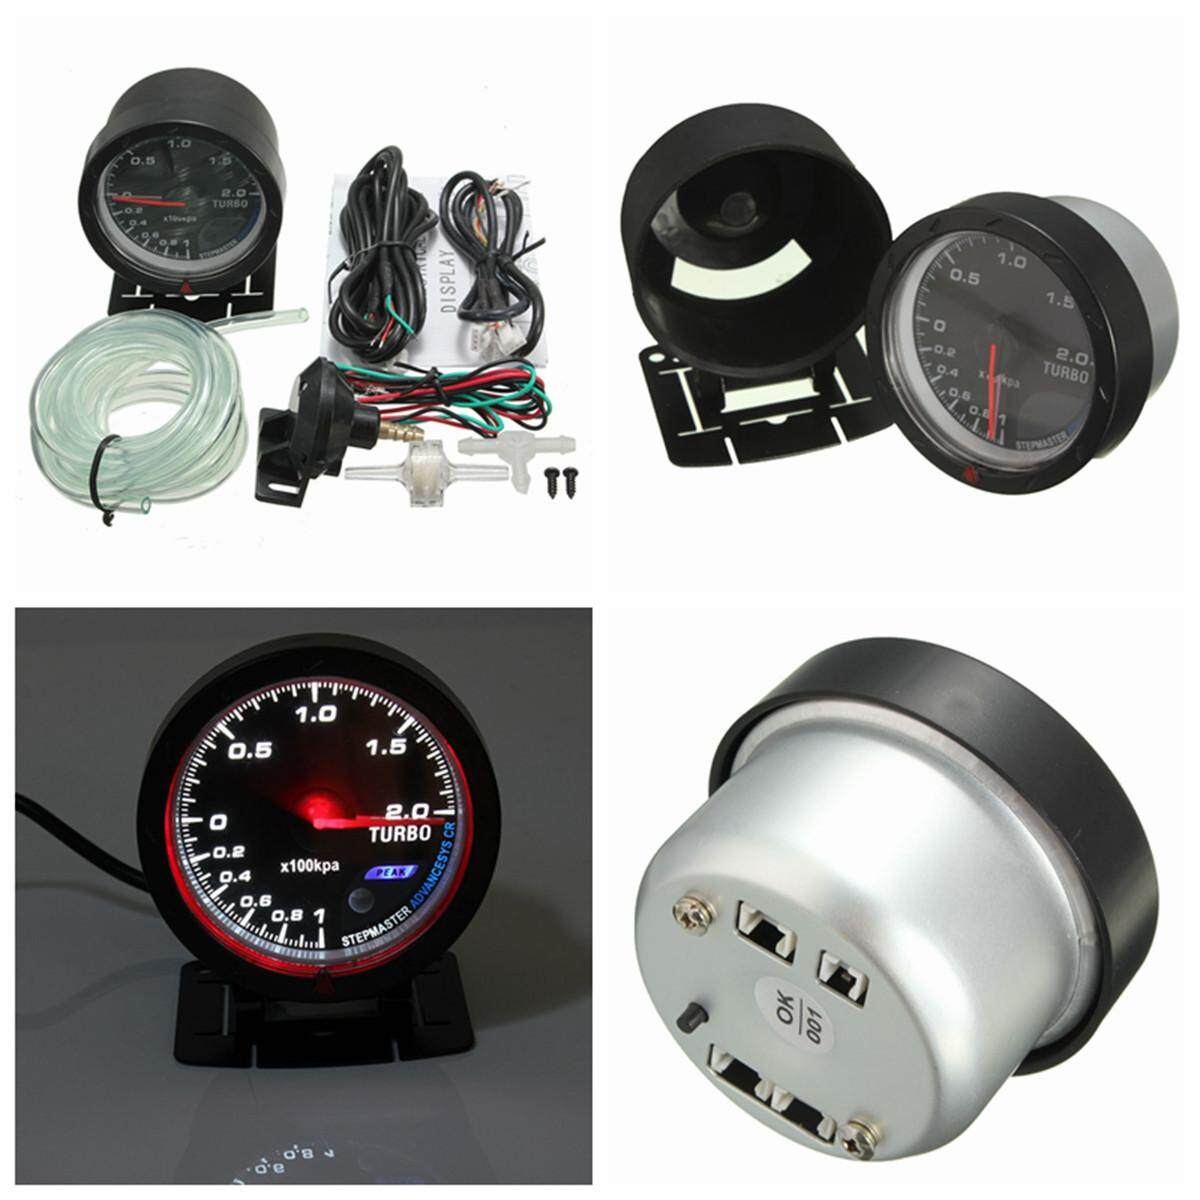 Gauges Buy At Best Price In Malaysia Blox Racingr Rpm Tachometer Gauge Replacement Wiring Harness Dc 12v Turbo Boost Meter Black 60mm